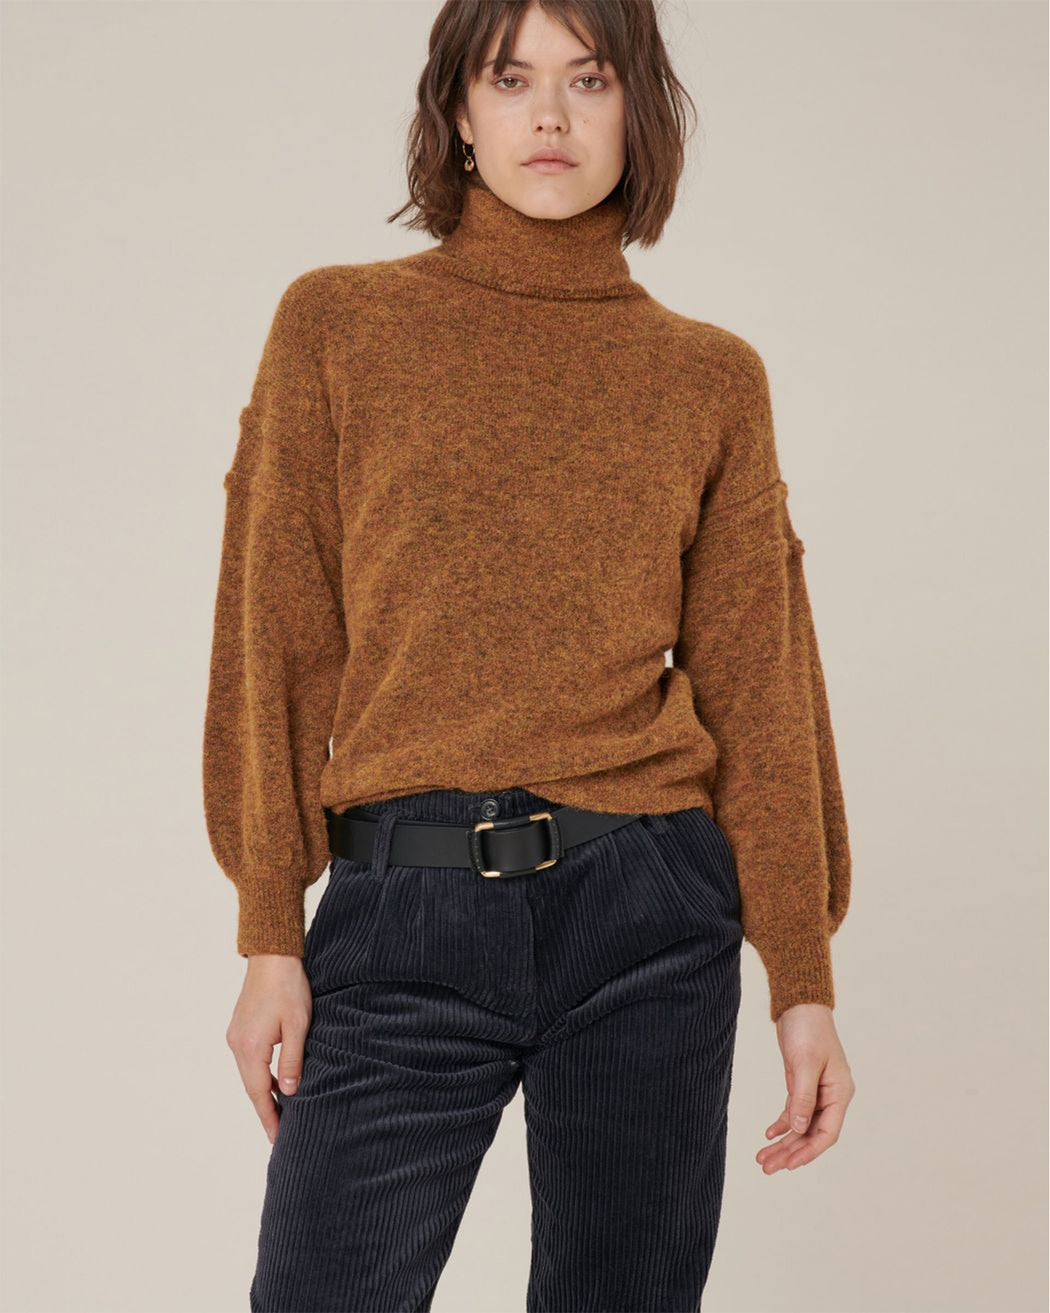 Zadora Sweater – Mapple